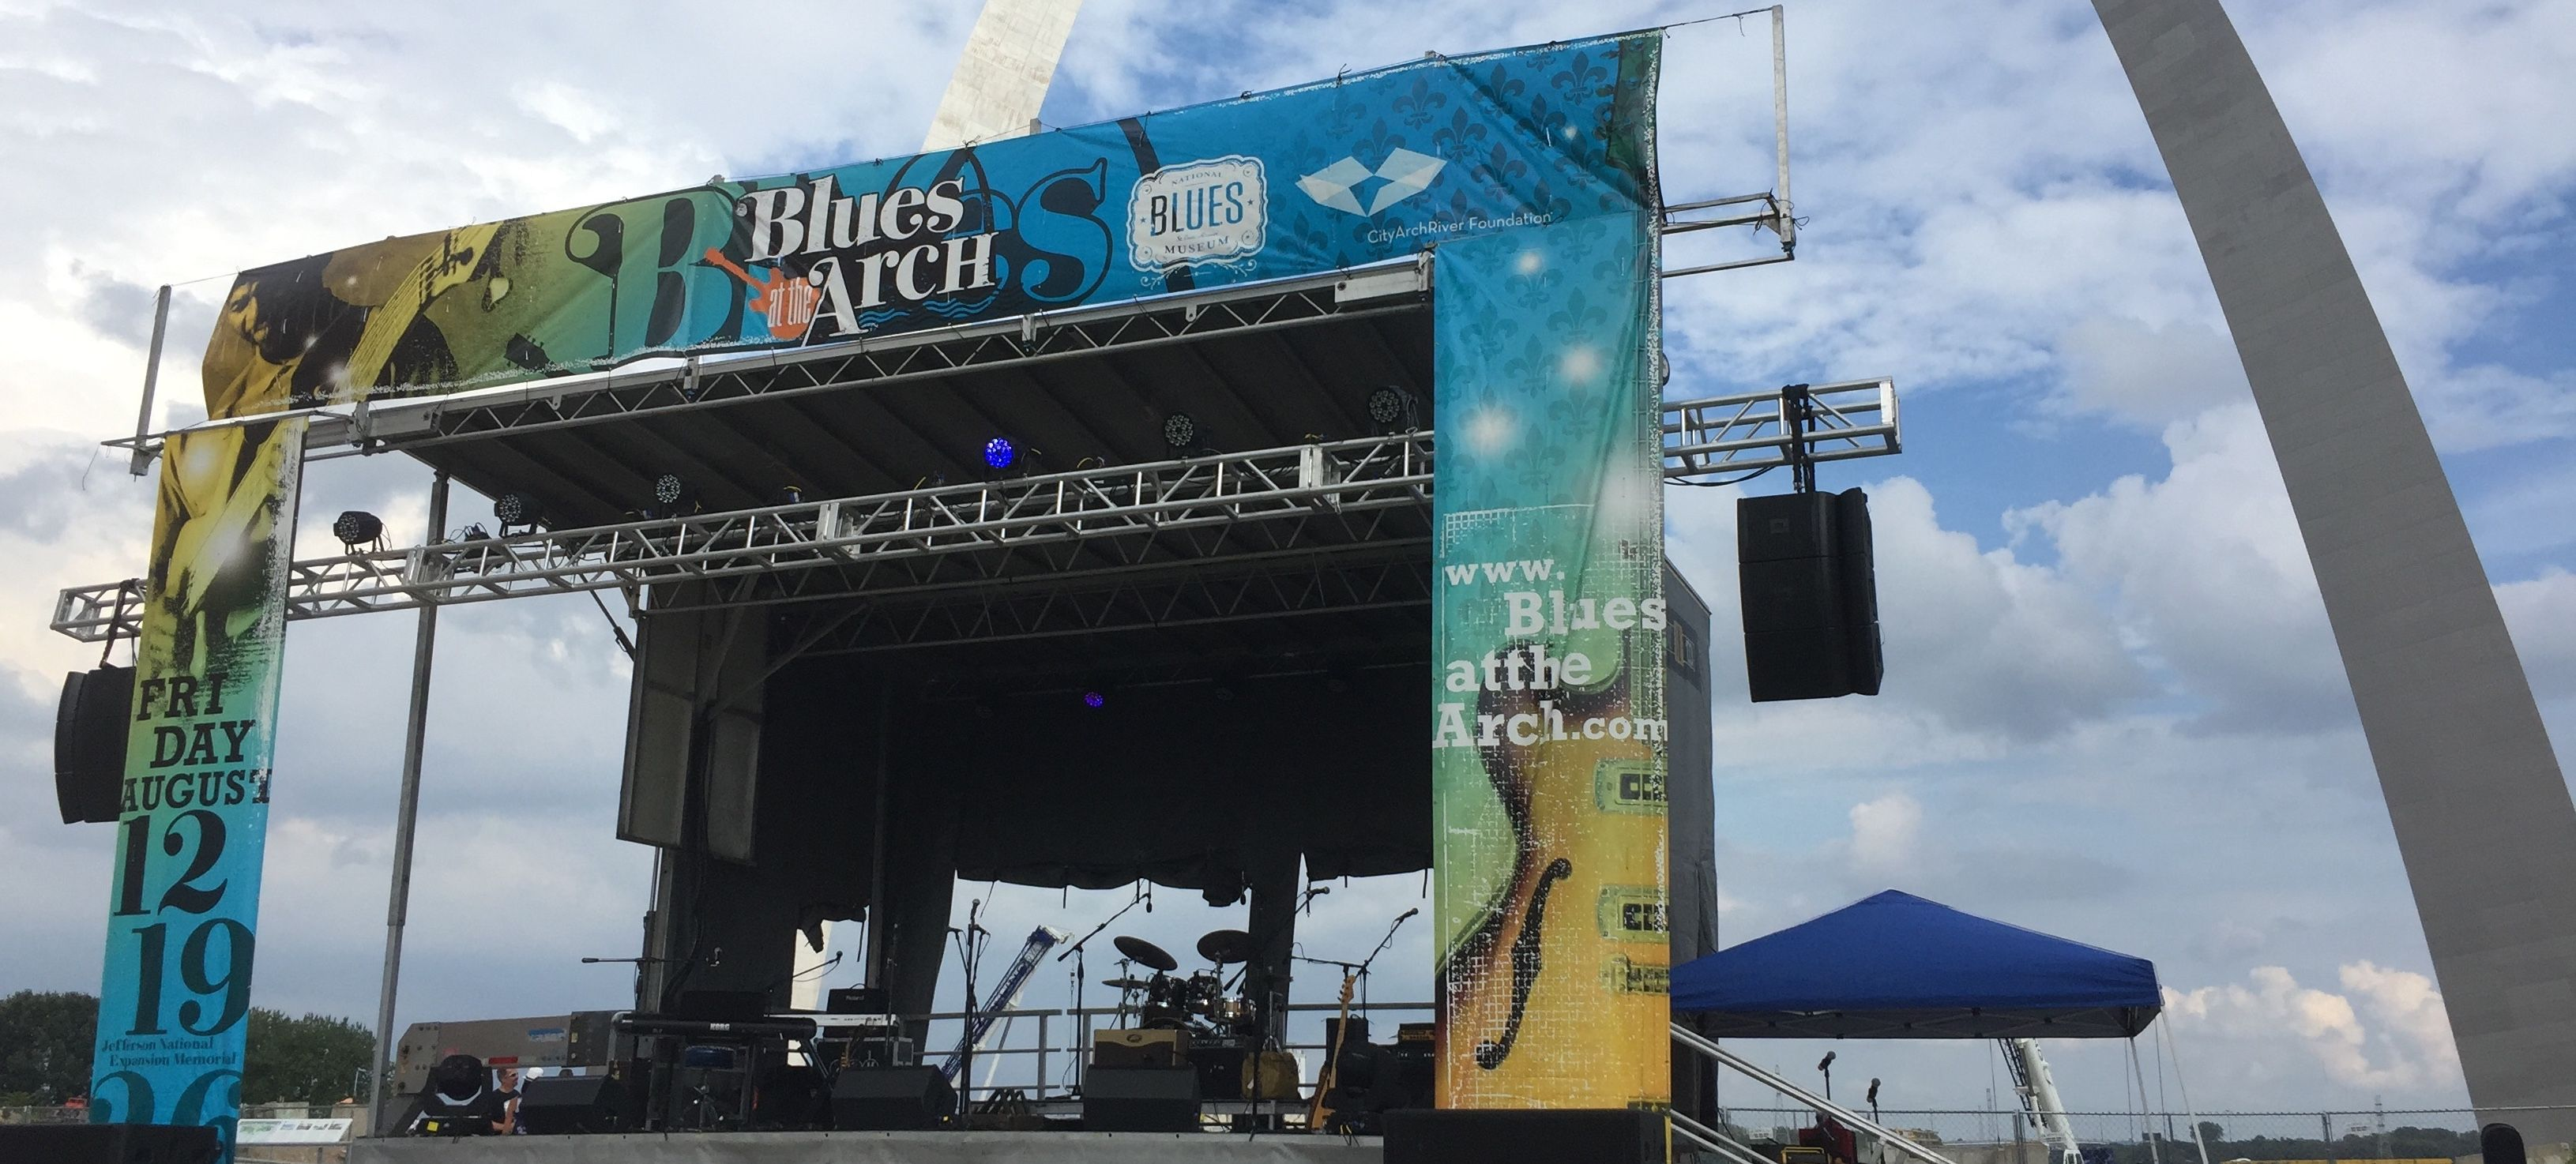 Blues show stage